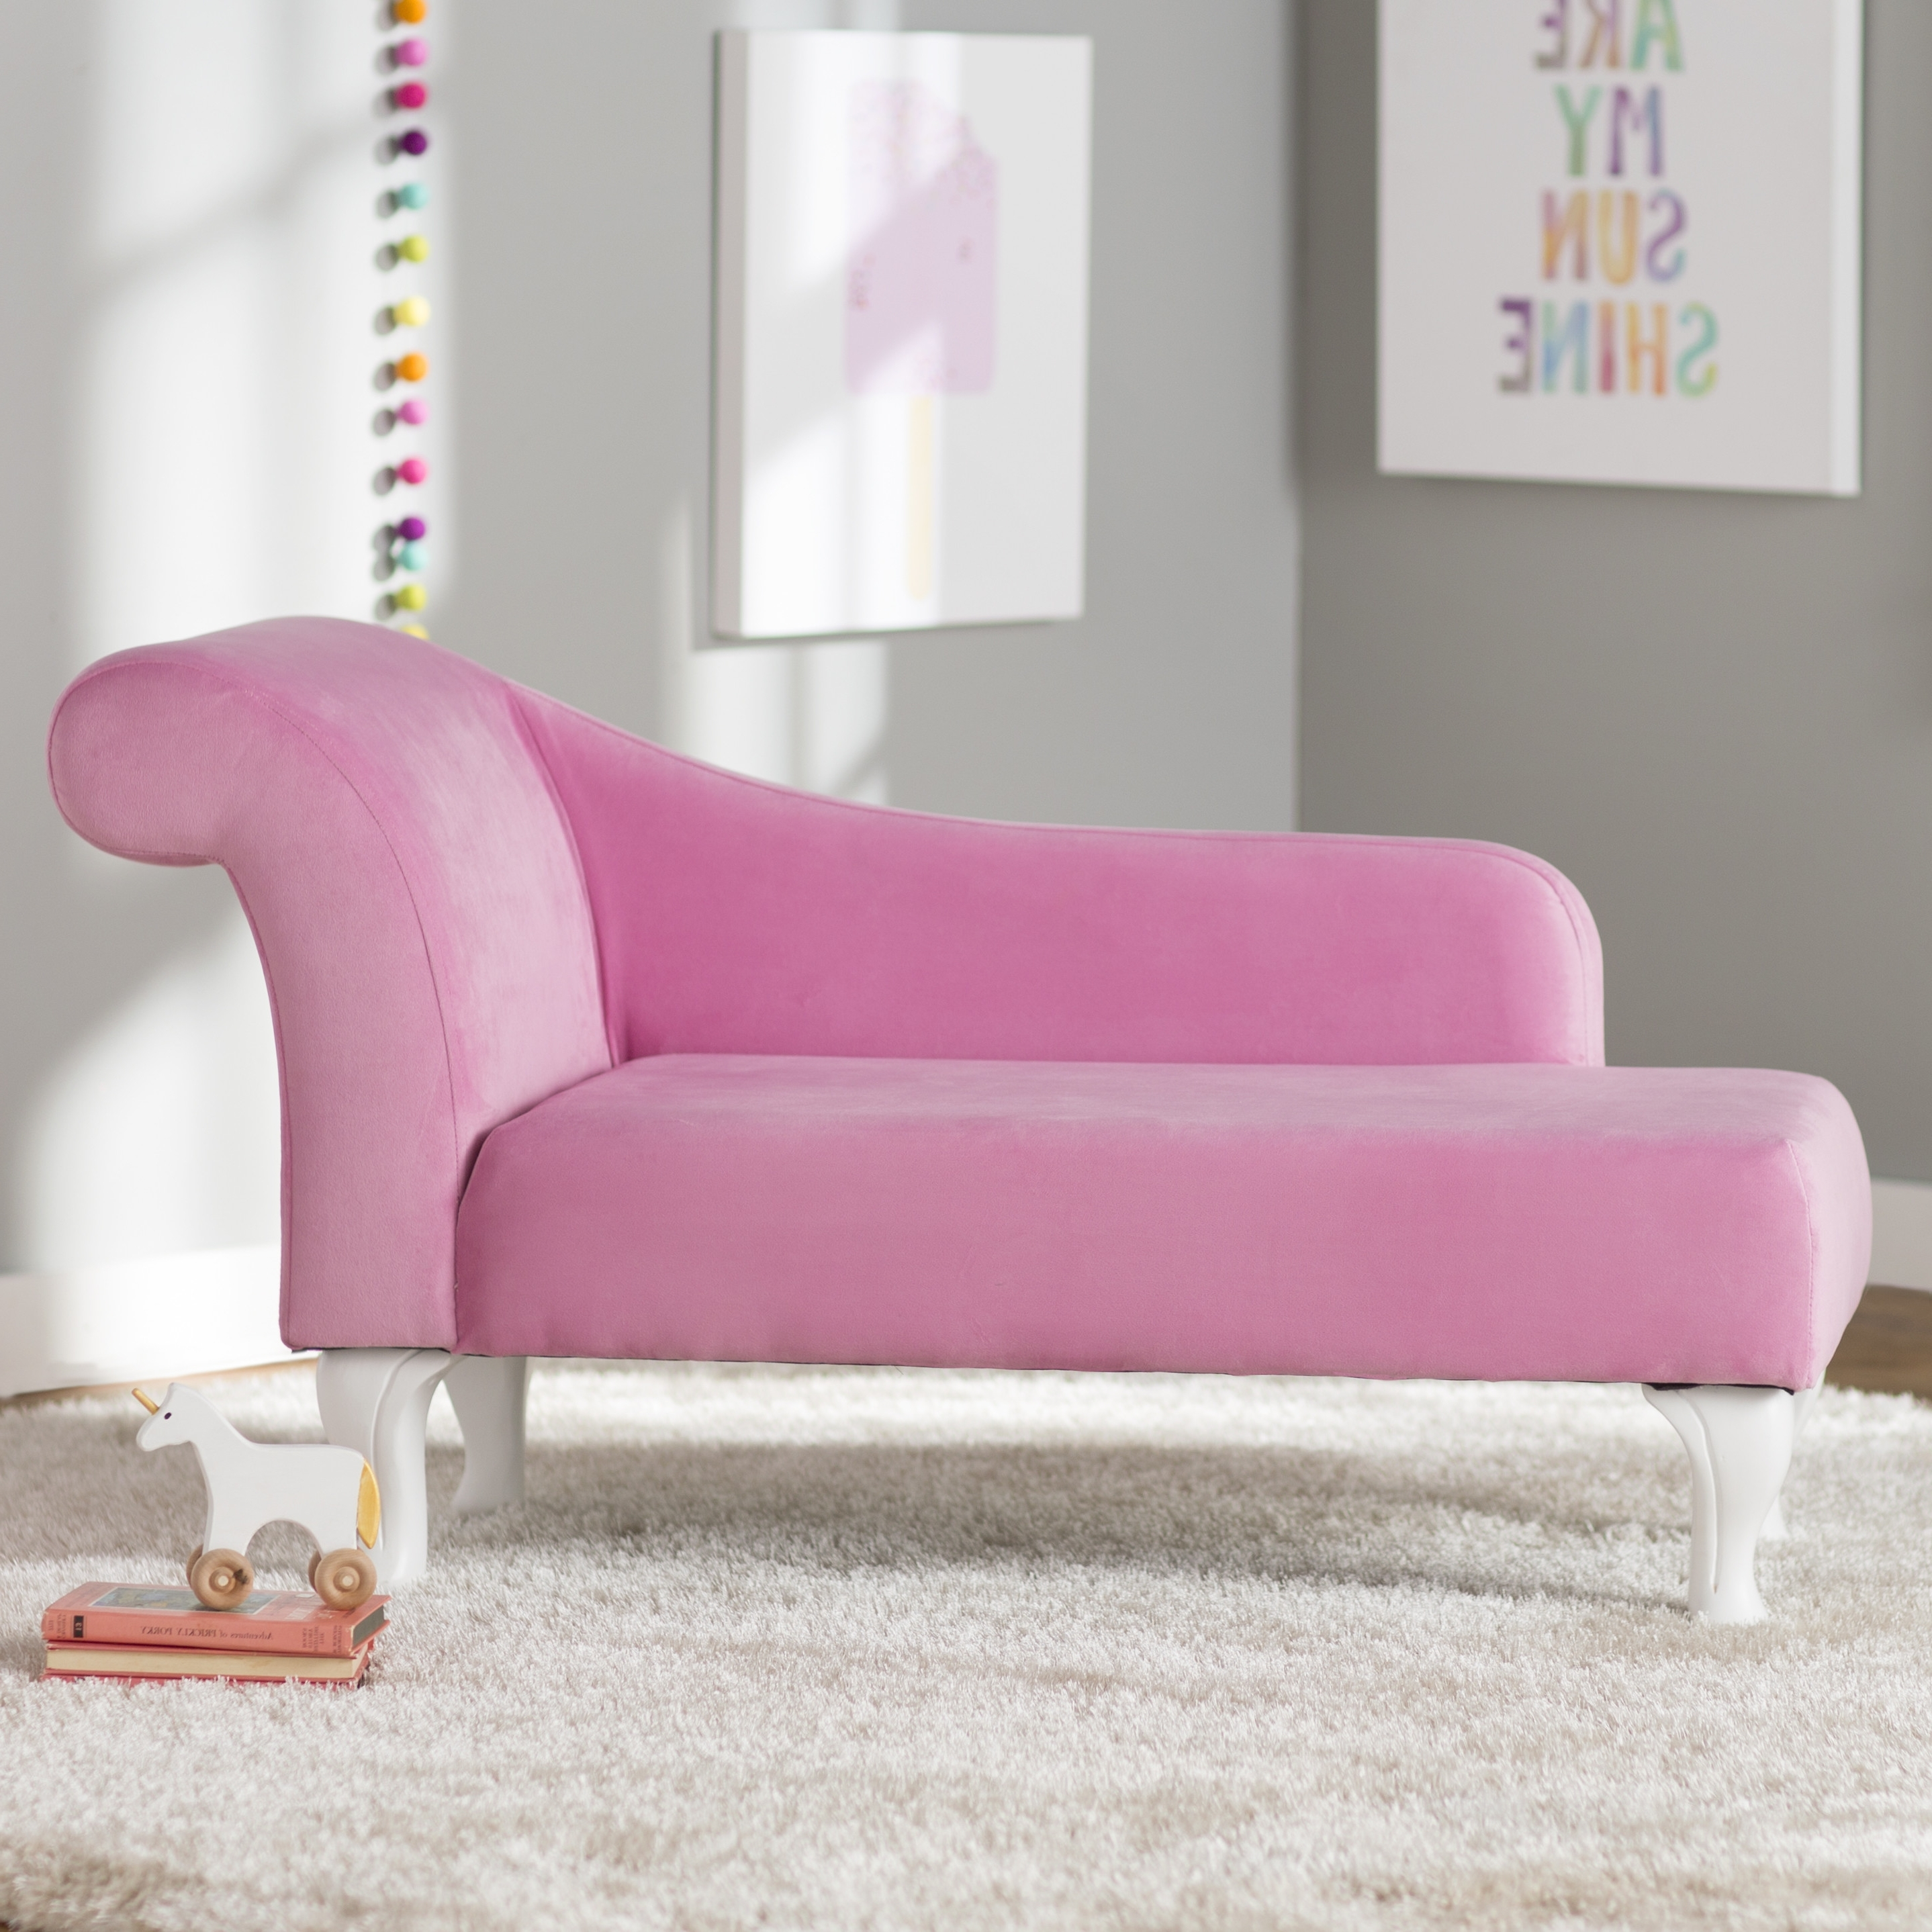 48 Kids Chaise Lounge, Kids Seating Wayfair – Warehousemold Regarding Current Children's Chaise Lounges (View 1 of 15)